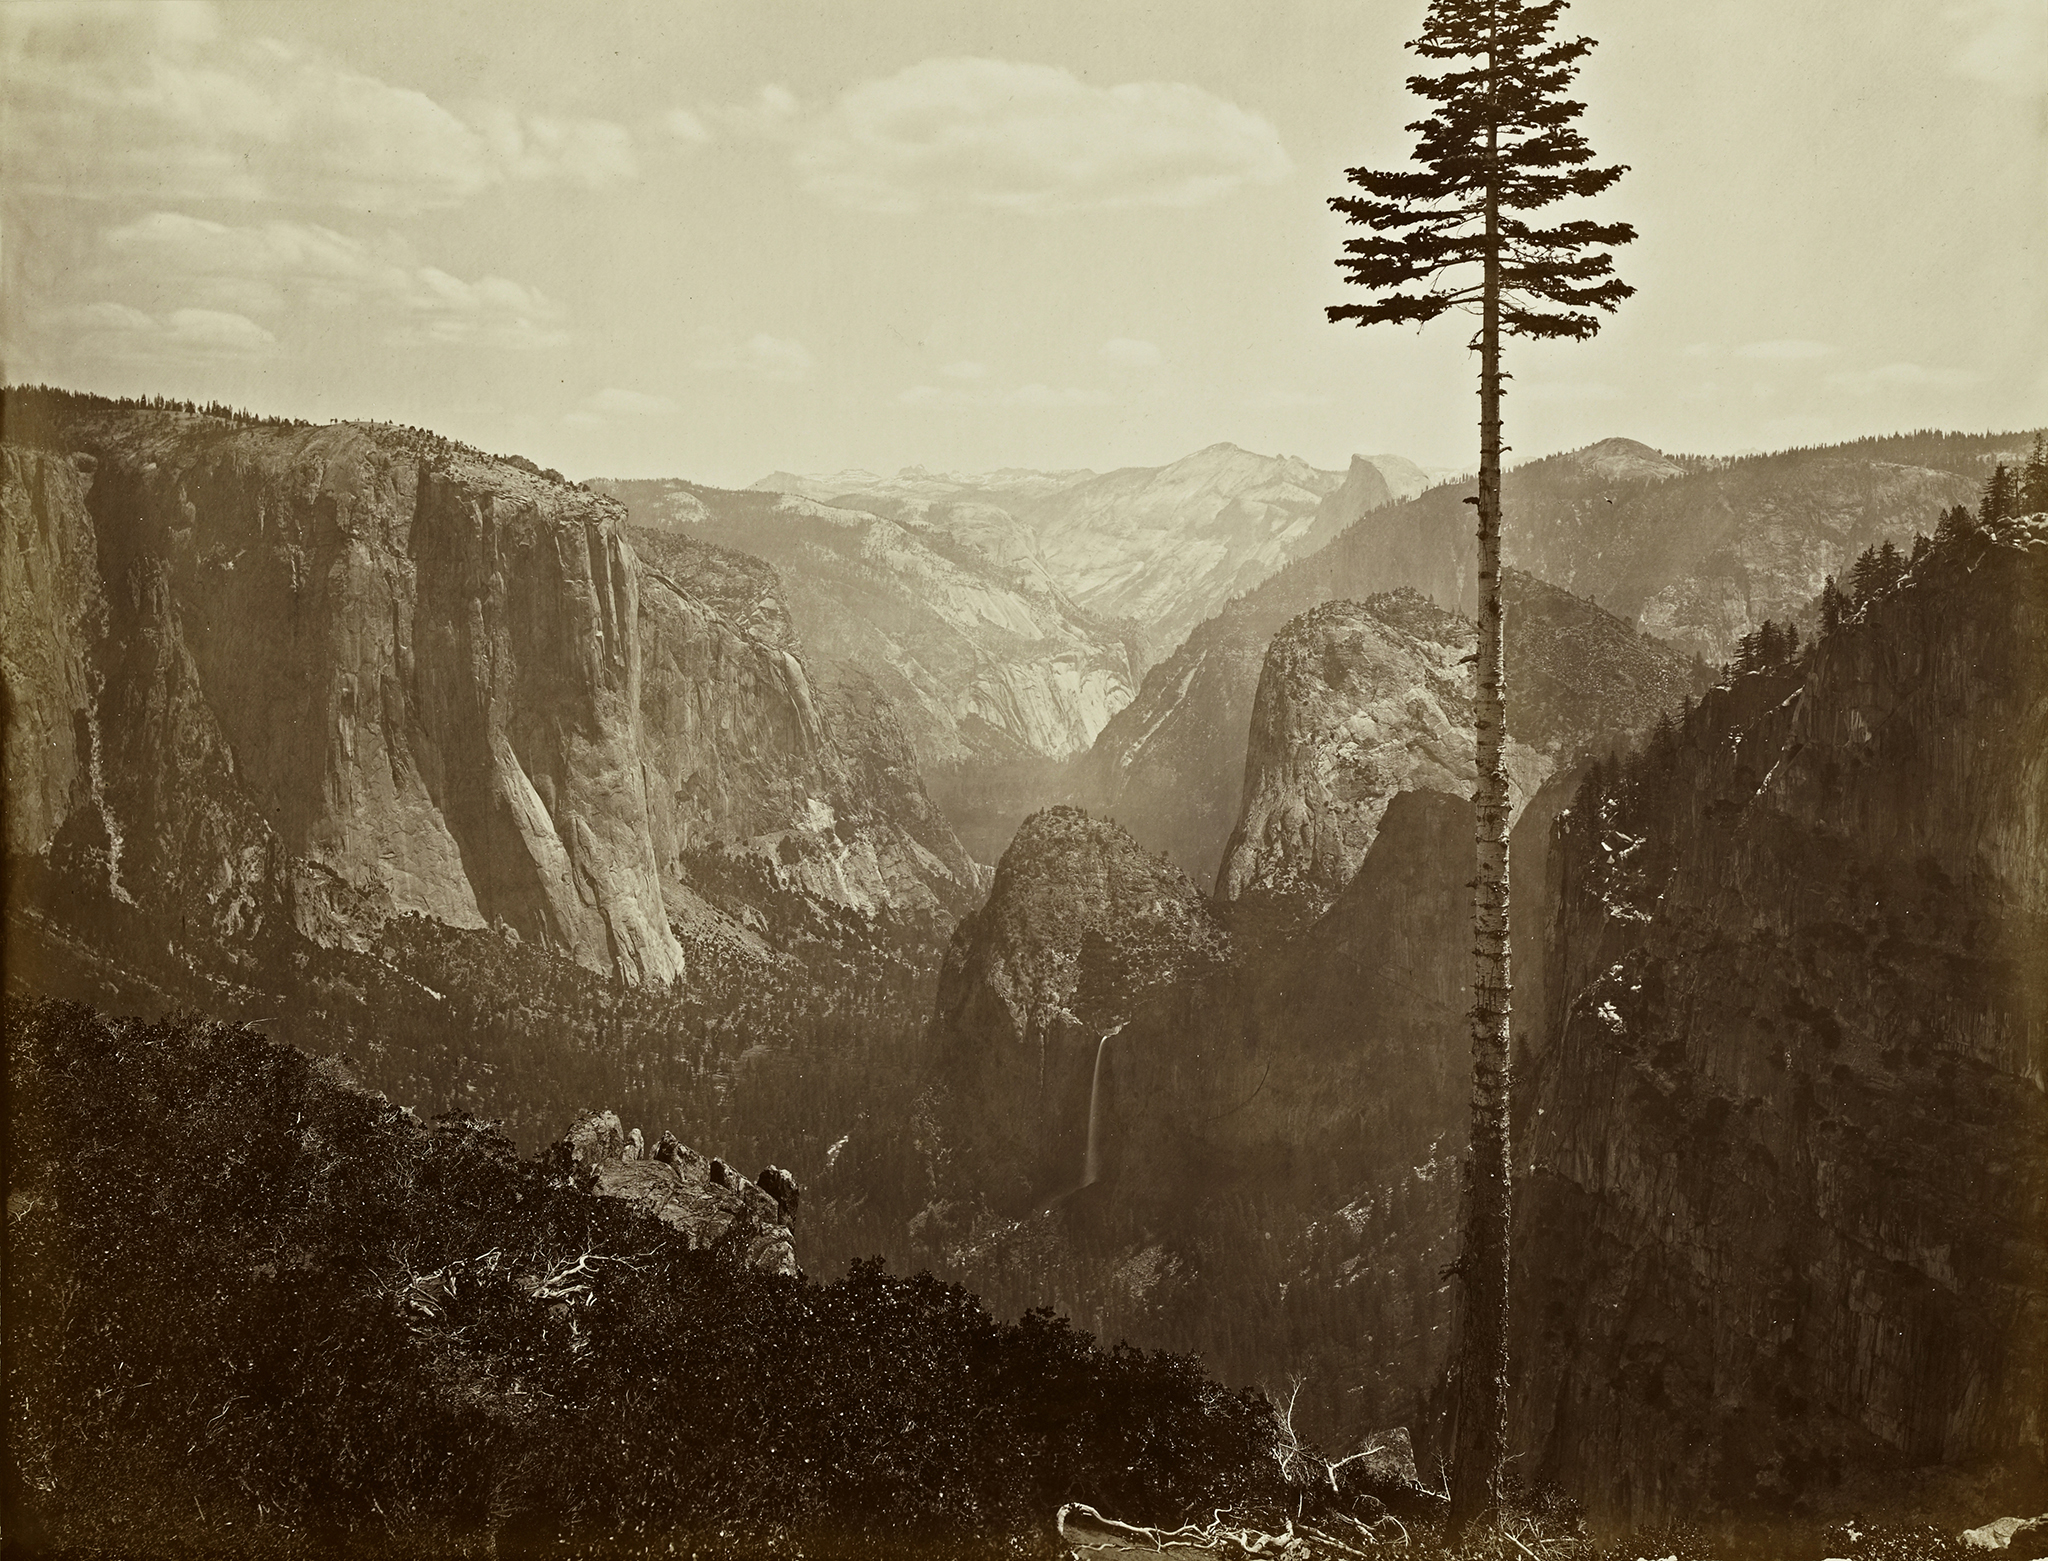 Yosemite, California, 1865